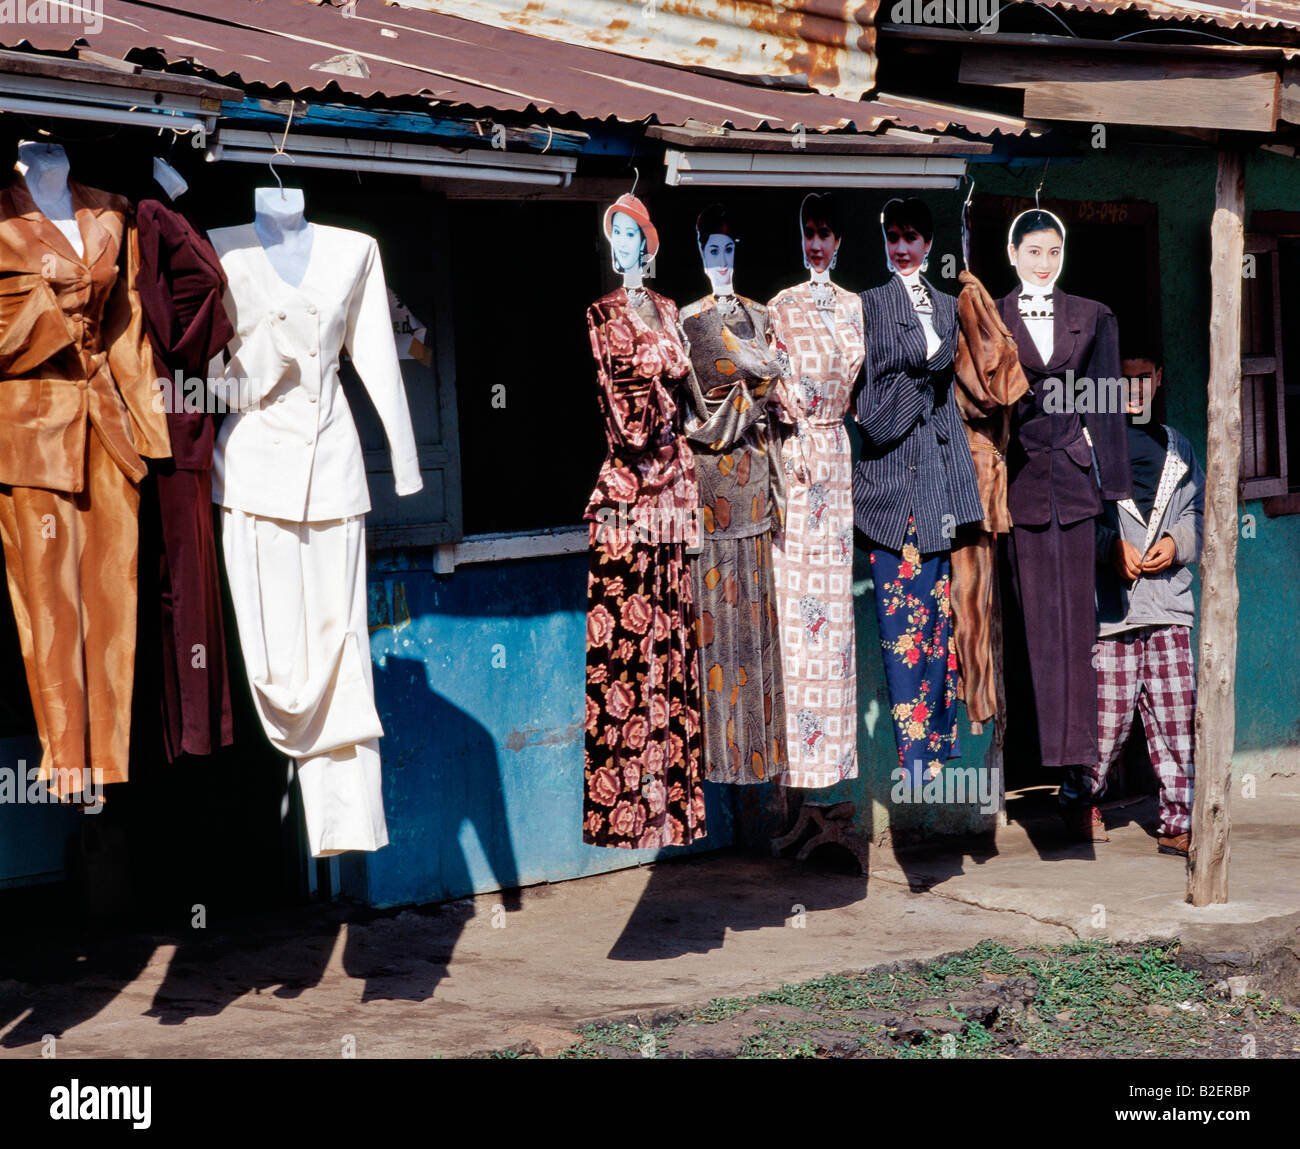 Unconventional tailors' dummies display ladies' dresses on the side of the road at Dese. - Stock Image